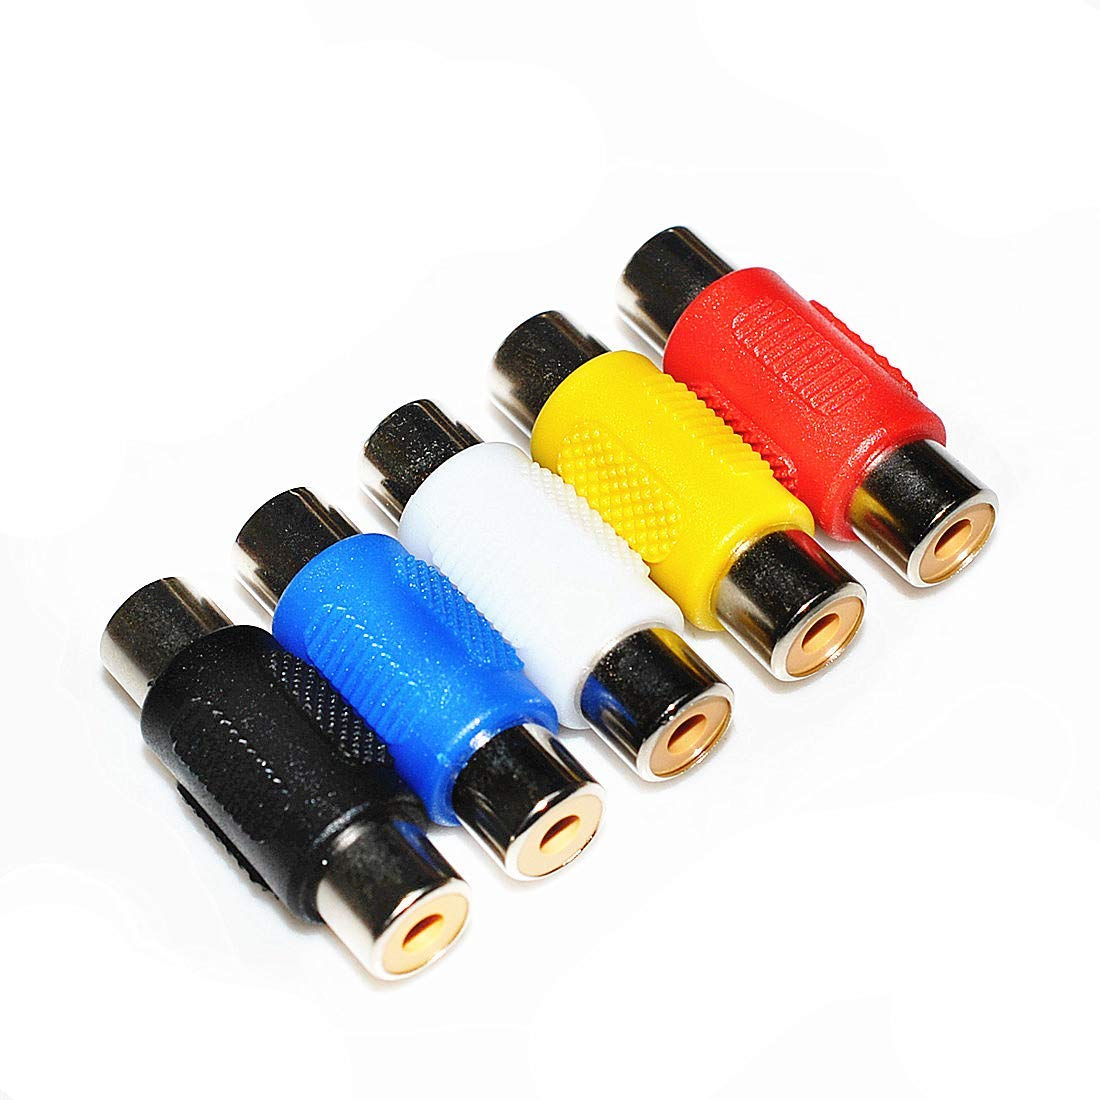 Willwin 5 pcs Audio Video AV RCA Female to Female Coupler Adapter Connector(Red+Yellow+Blue+Black+White)